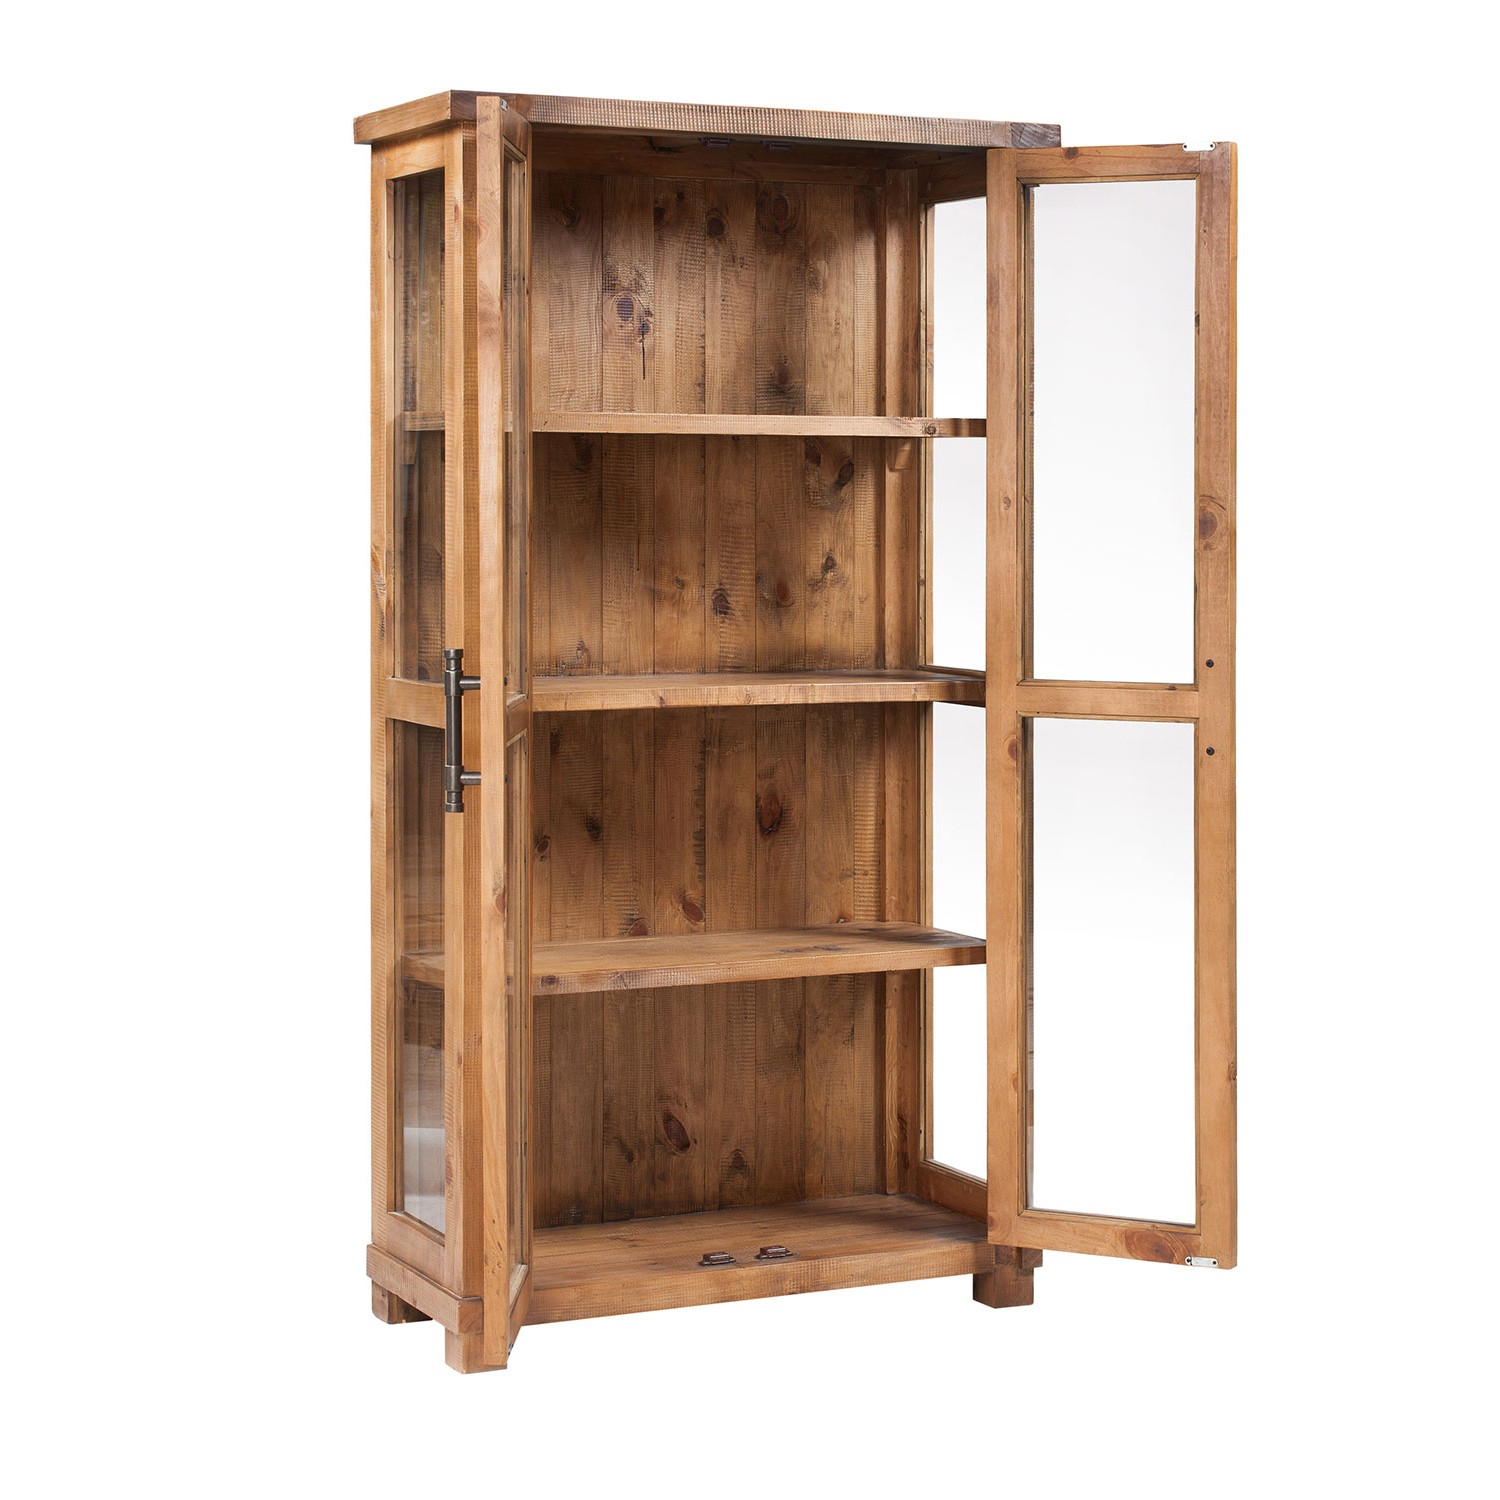 Country Gl Display Cabinet W Doors 391773 Pine Woodfinish Throughout Proportions 1500 X